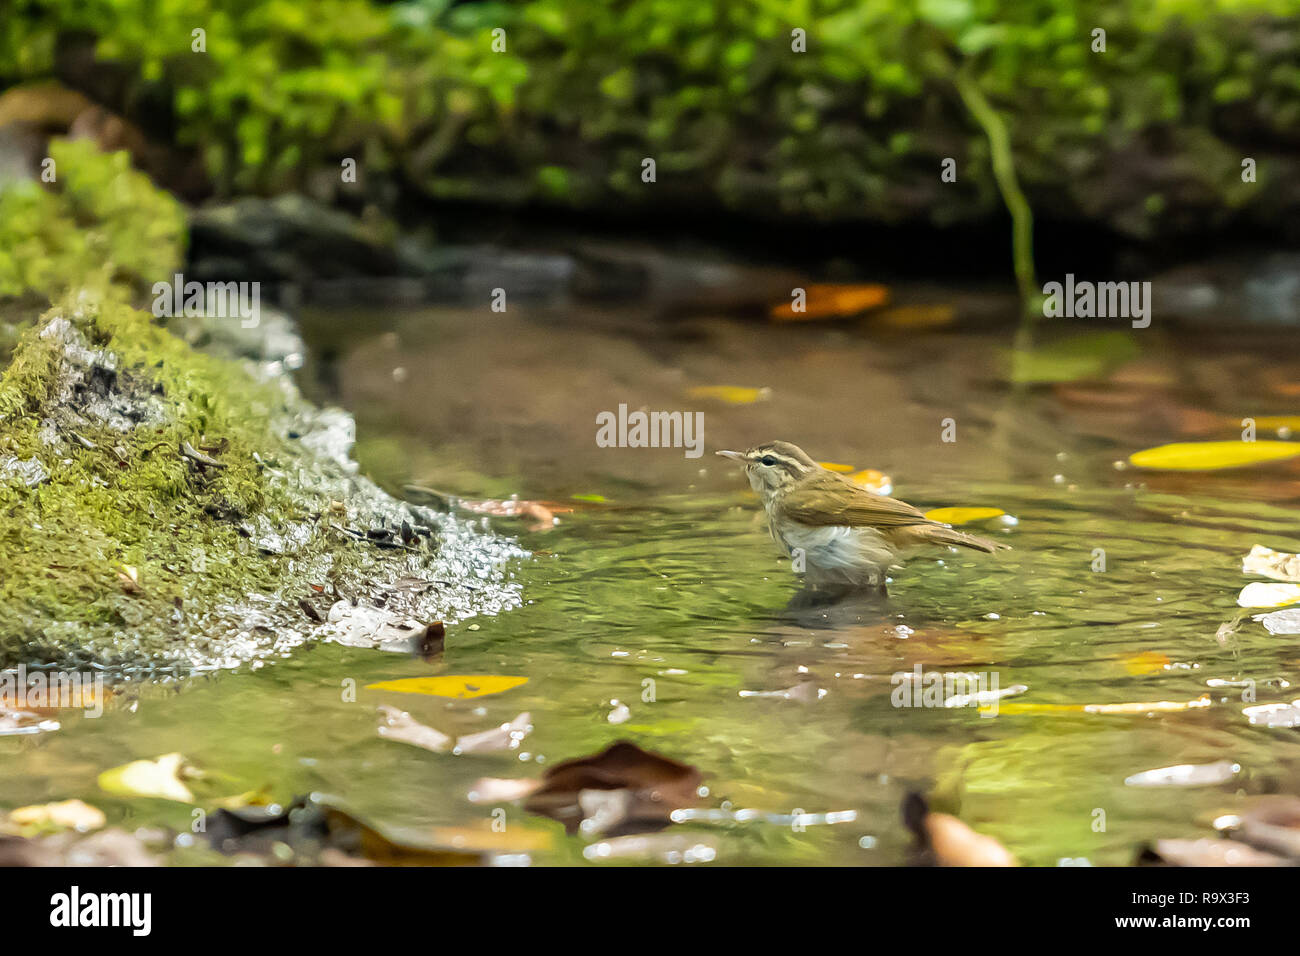 A Pale legged Leaf warbler bathing in a natural small pond Stock Photo